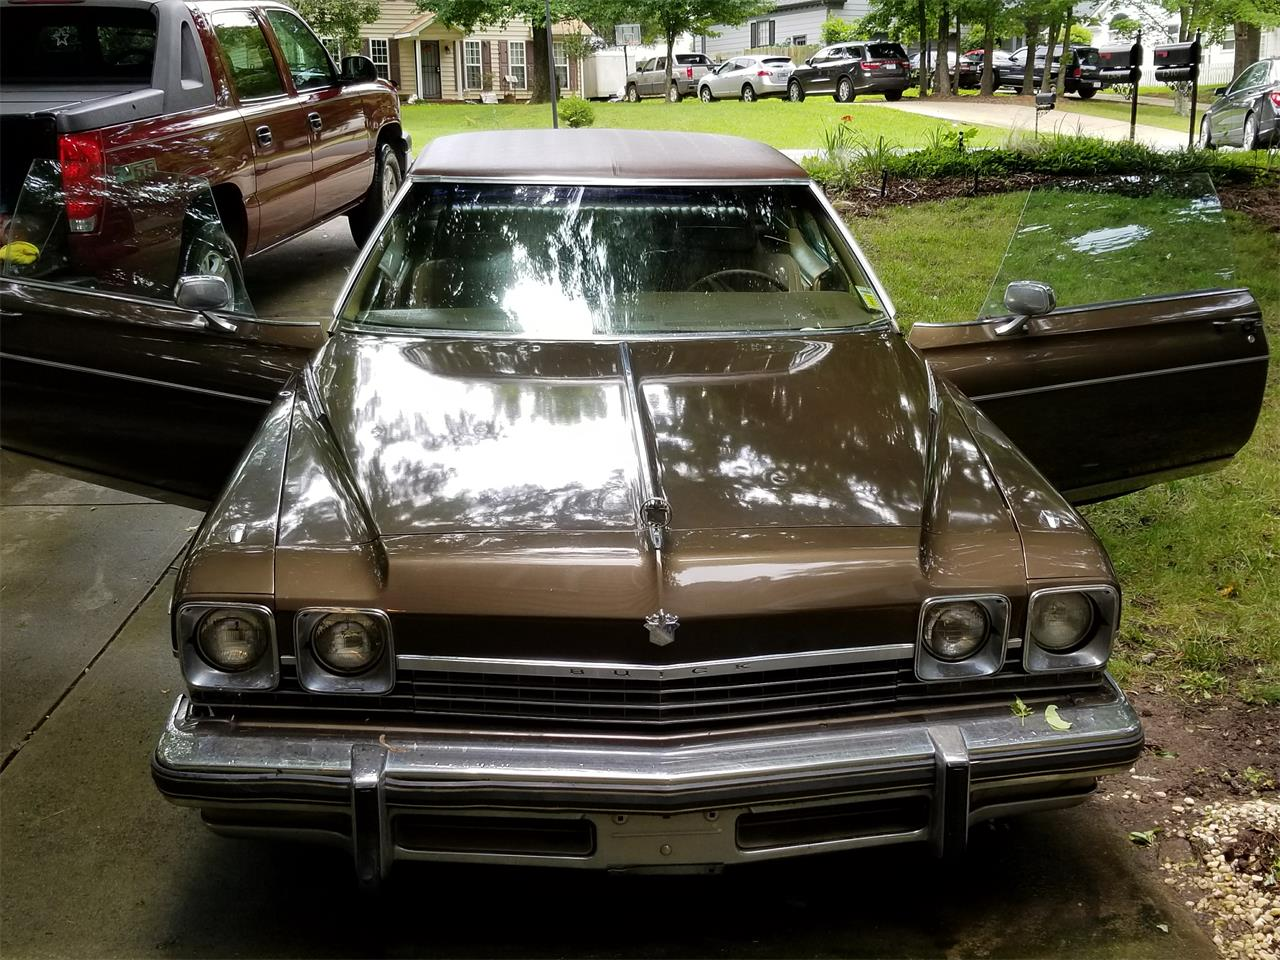 1974 buick electra 225 for sale in charlotte nc classiccarsbay com 1974 buick electra 225 for sale in